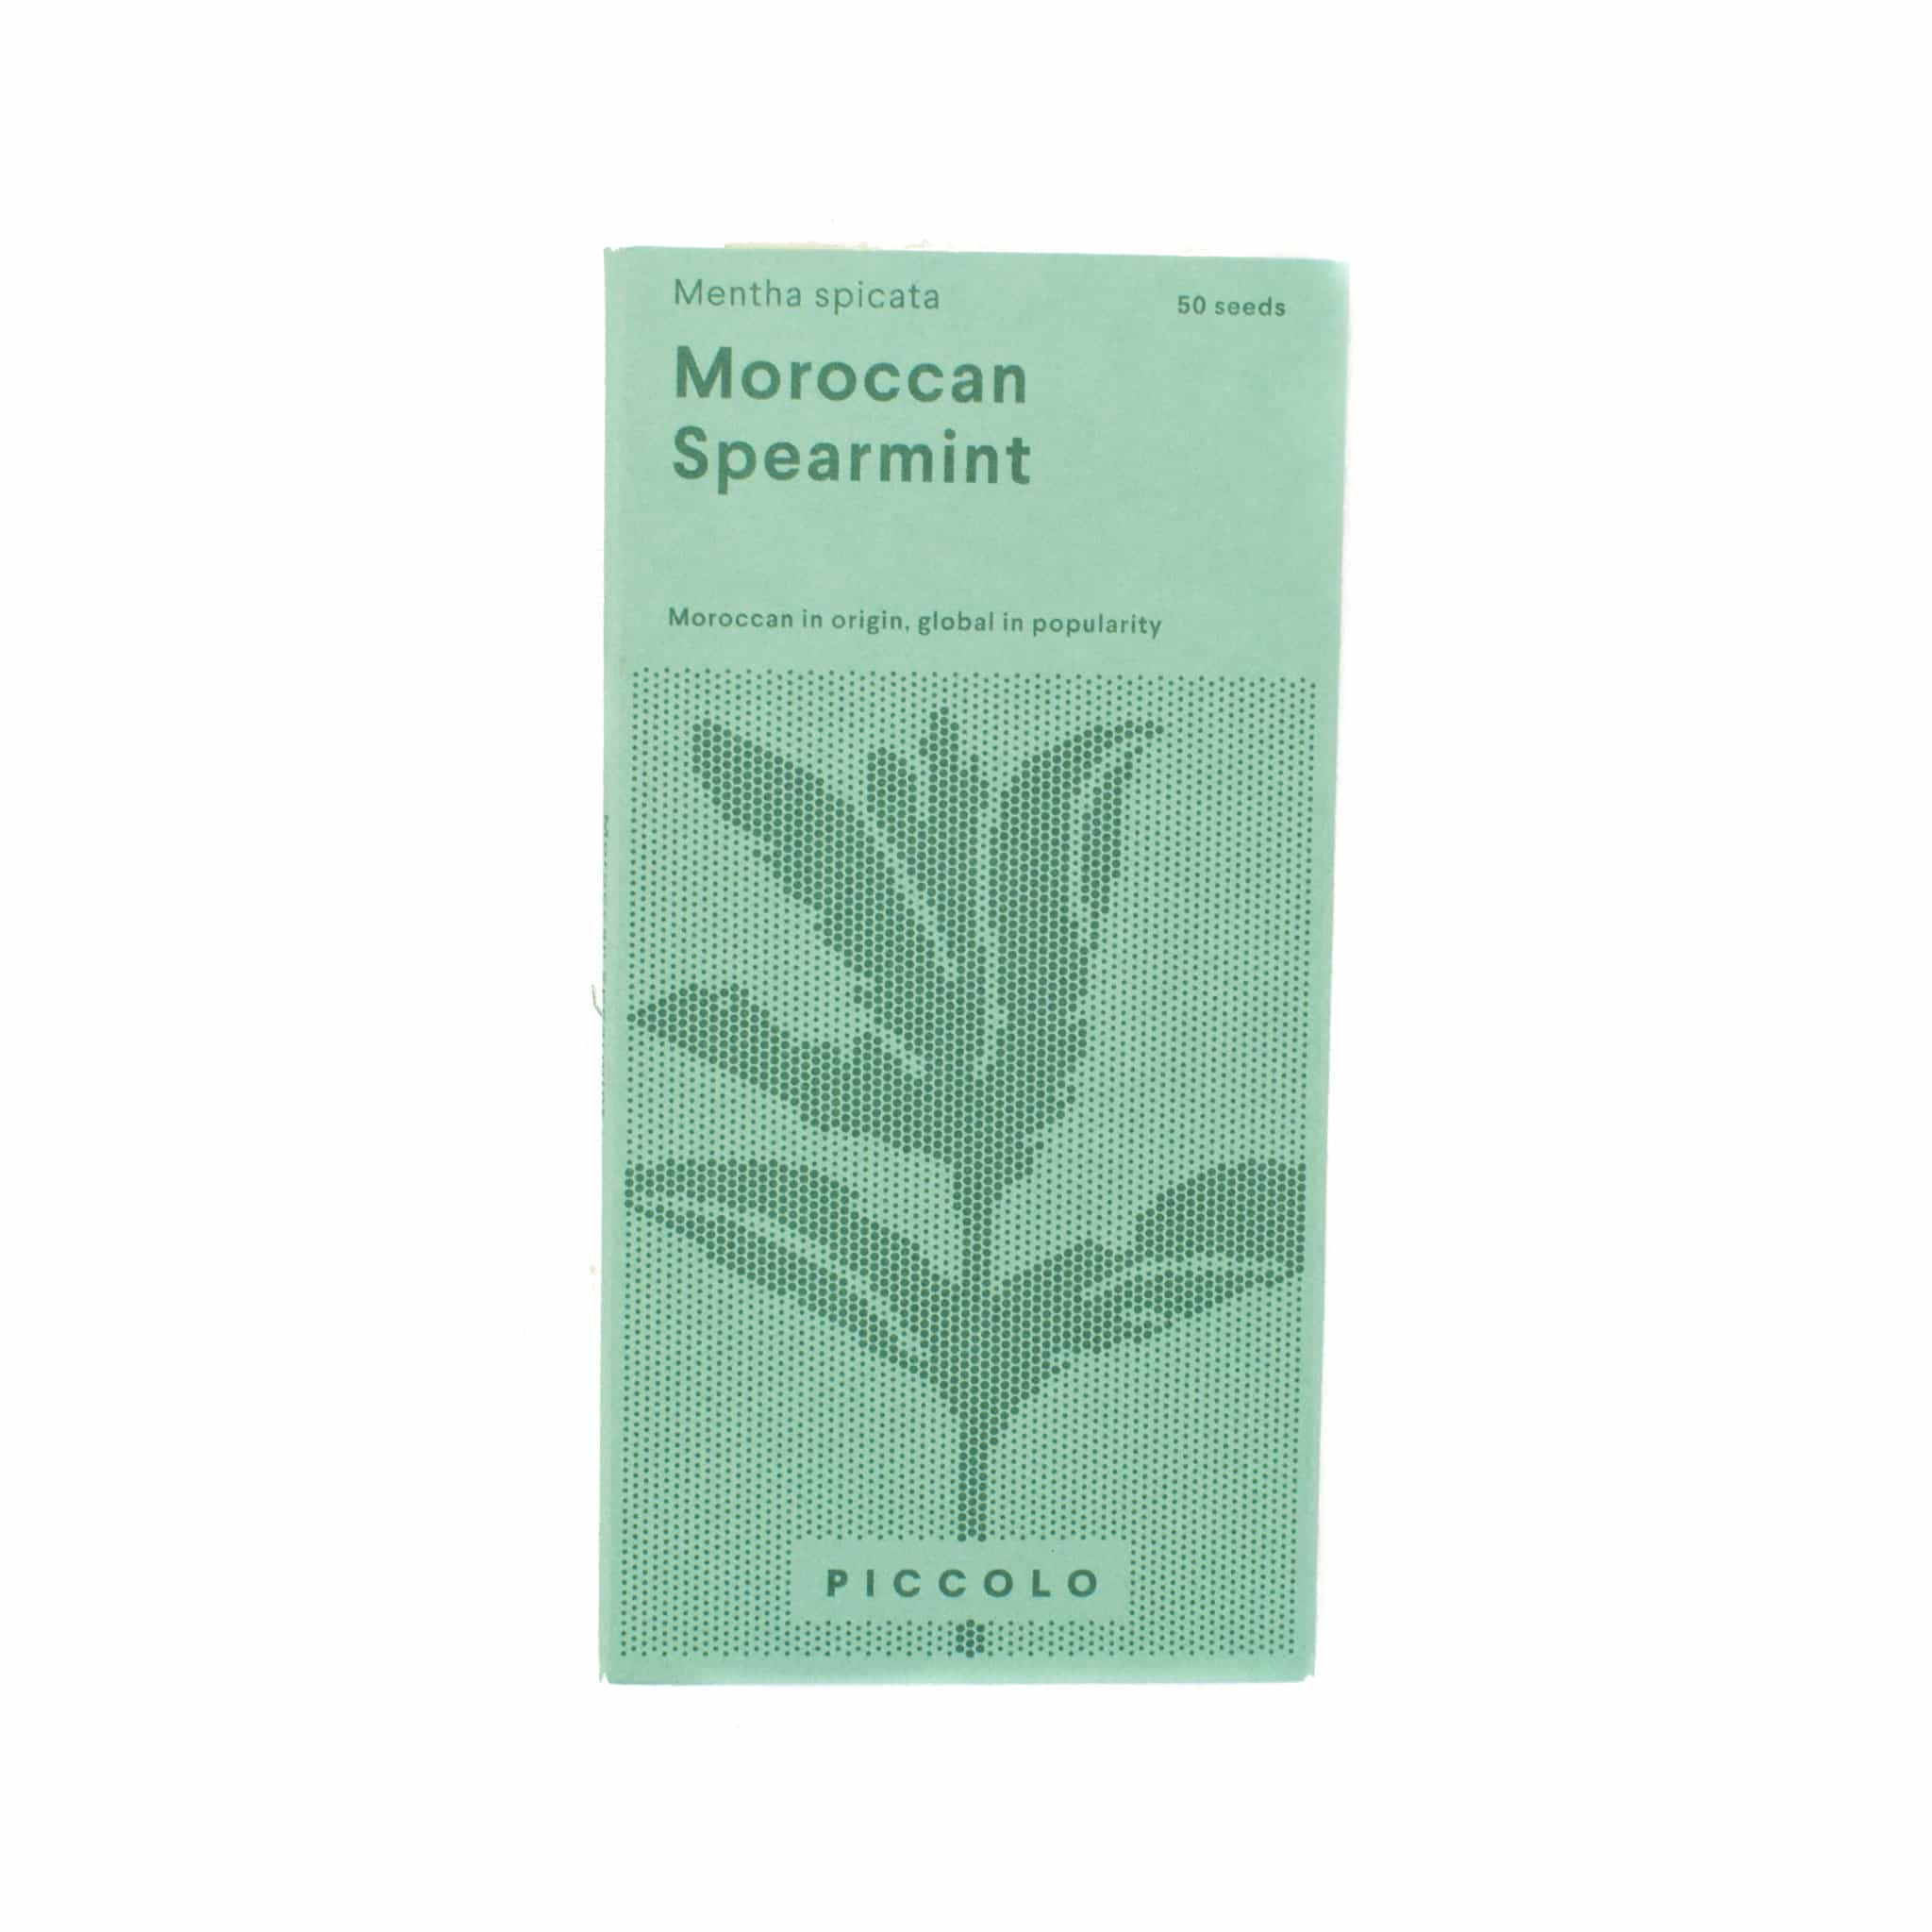 Piccolo Moroccan Spearmint Seeds